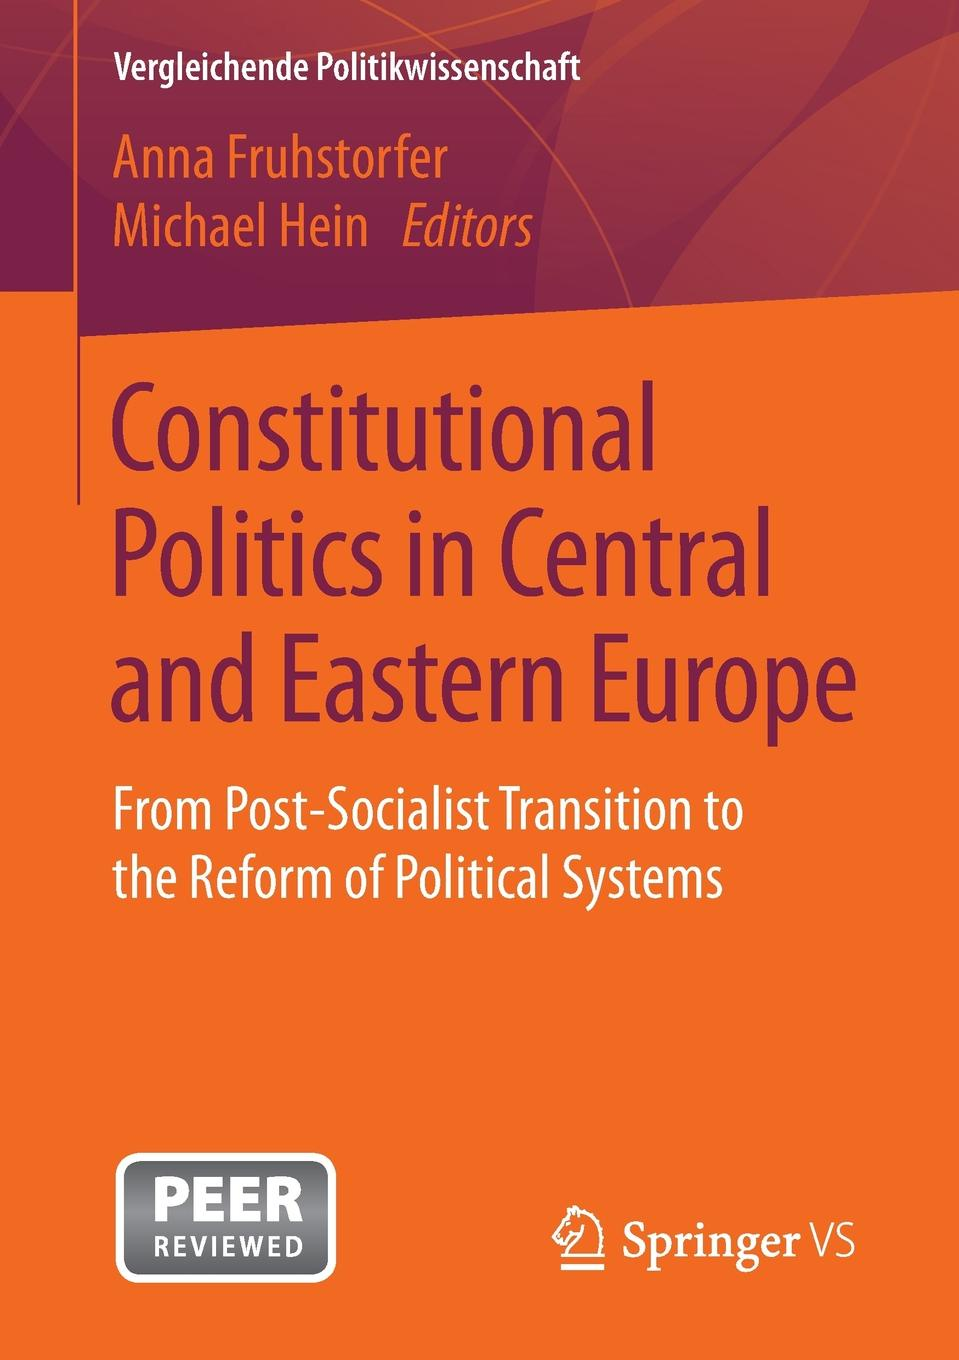 цены Constitutional Politics in Central and Eastern Europe. From Post-Socialist Transition to the Reform of Political Systems